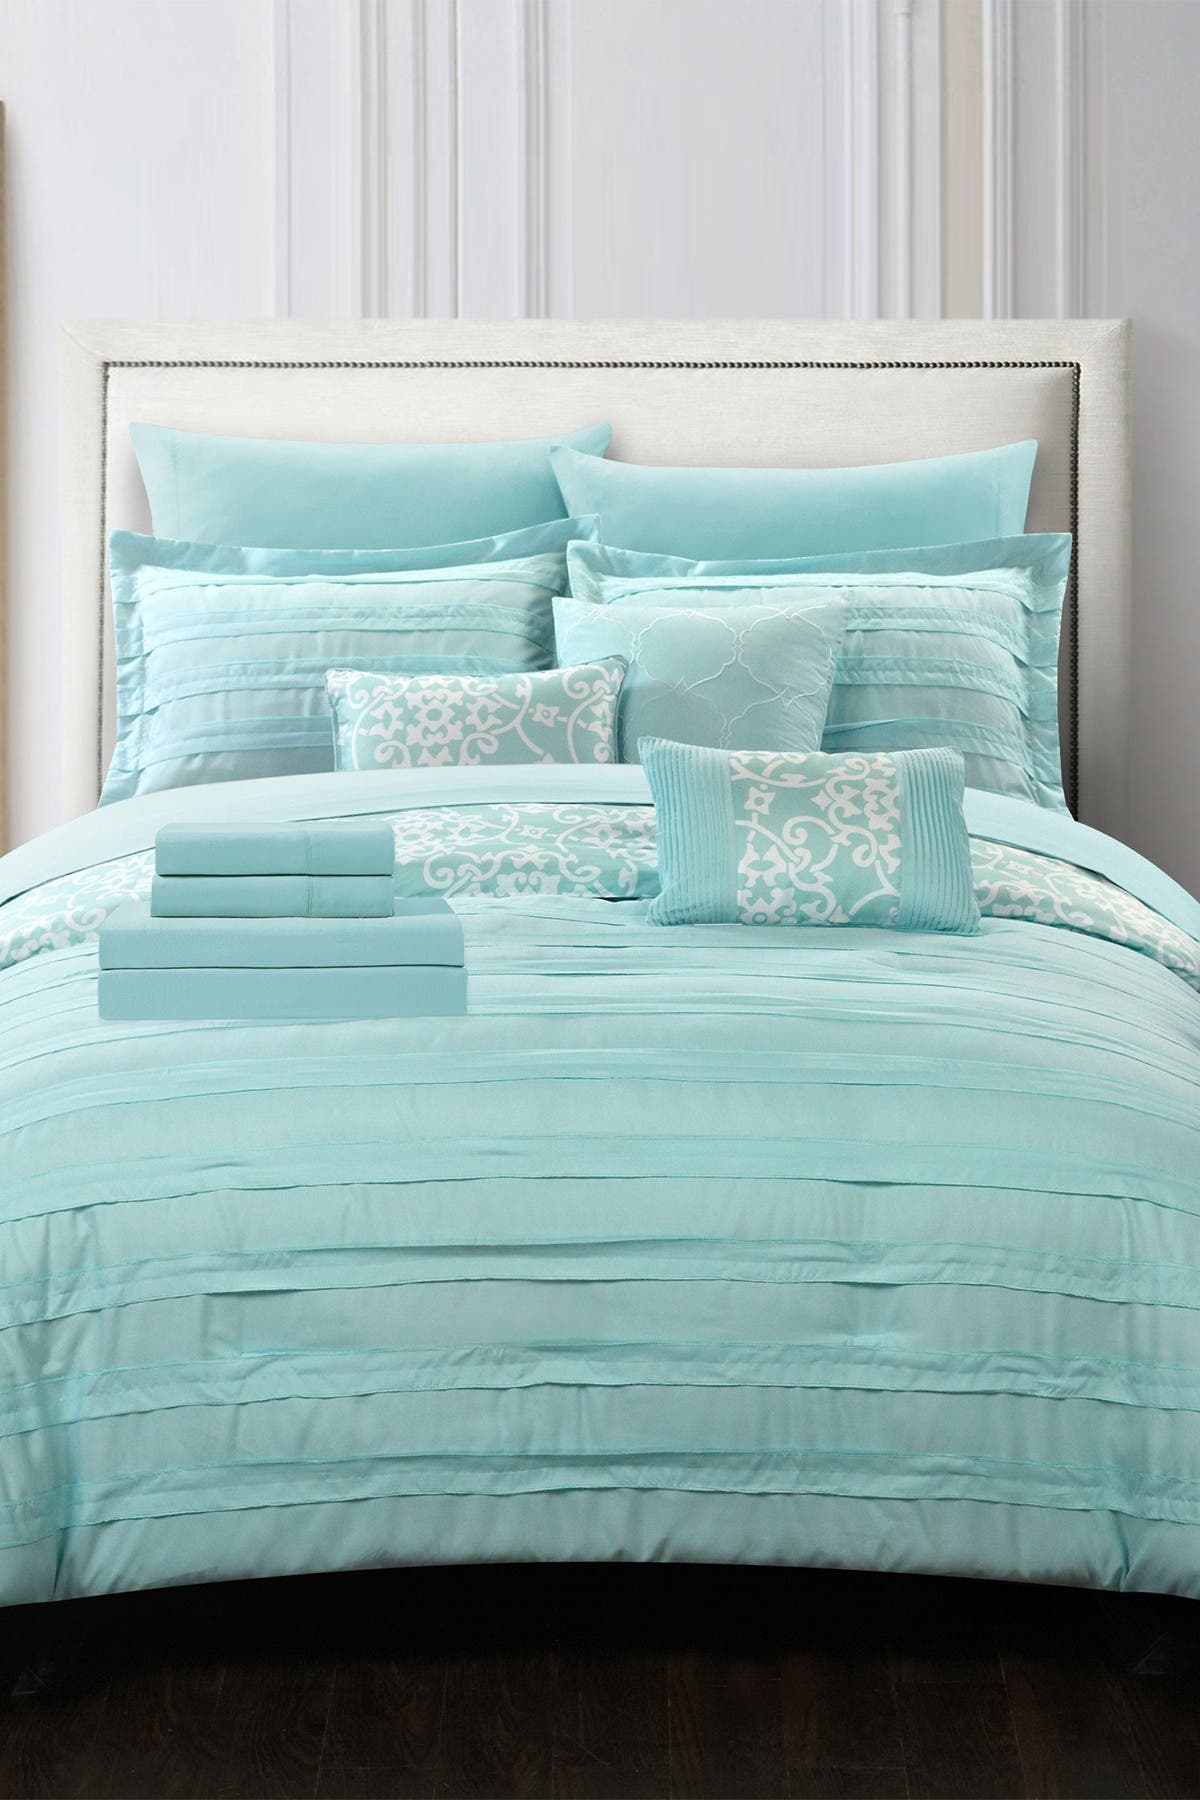 Image of Chic Home Bedding King Isobelle Complete Pleated Ruffles and Reversible Printed Bed Comforter 10-Piece Set - Aqua